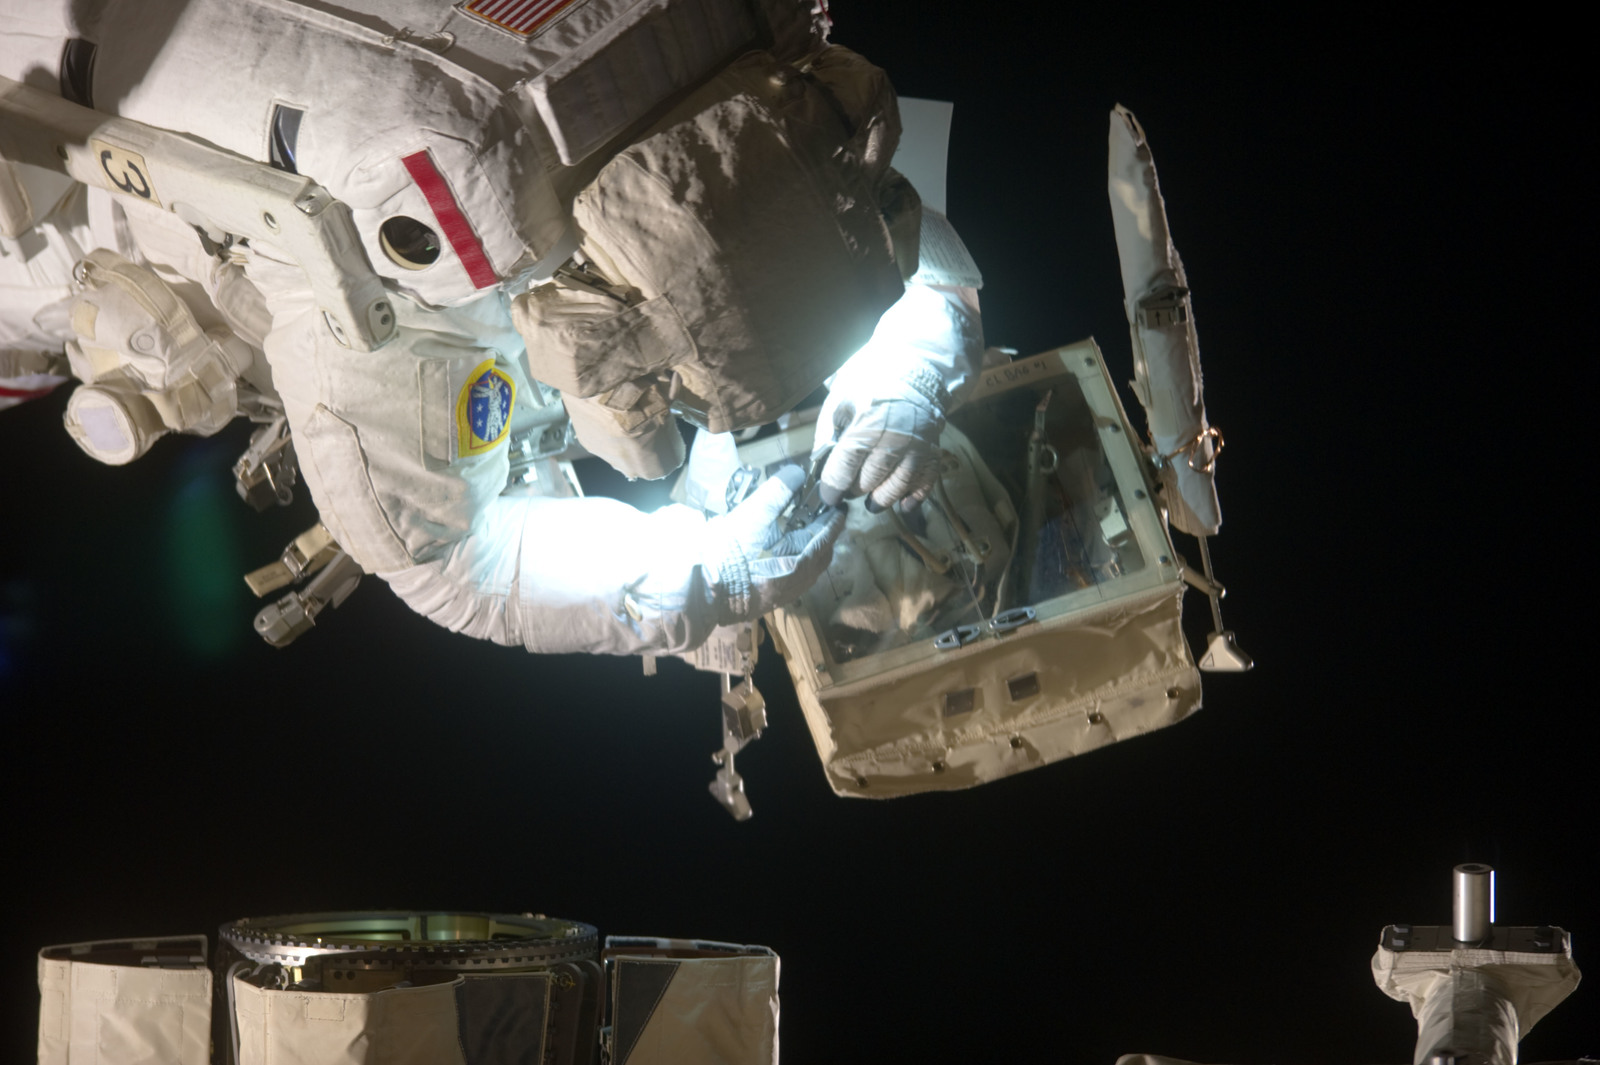 S134E008639 - STS-134 - View of STS-134 MS Feustel during EVA-2